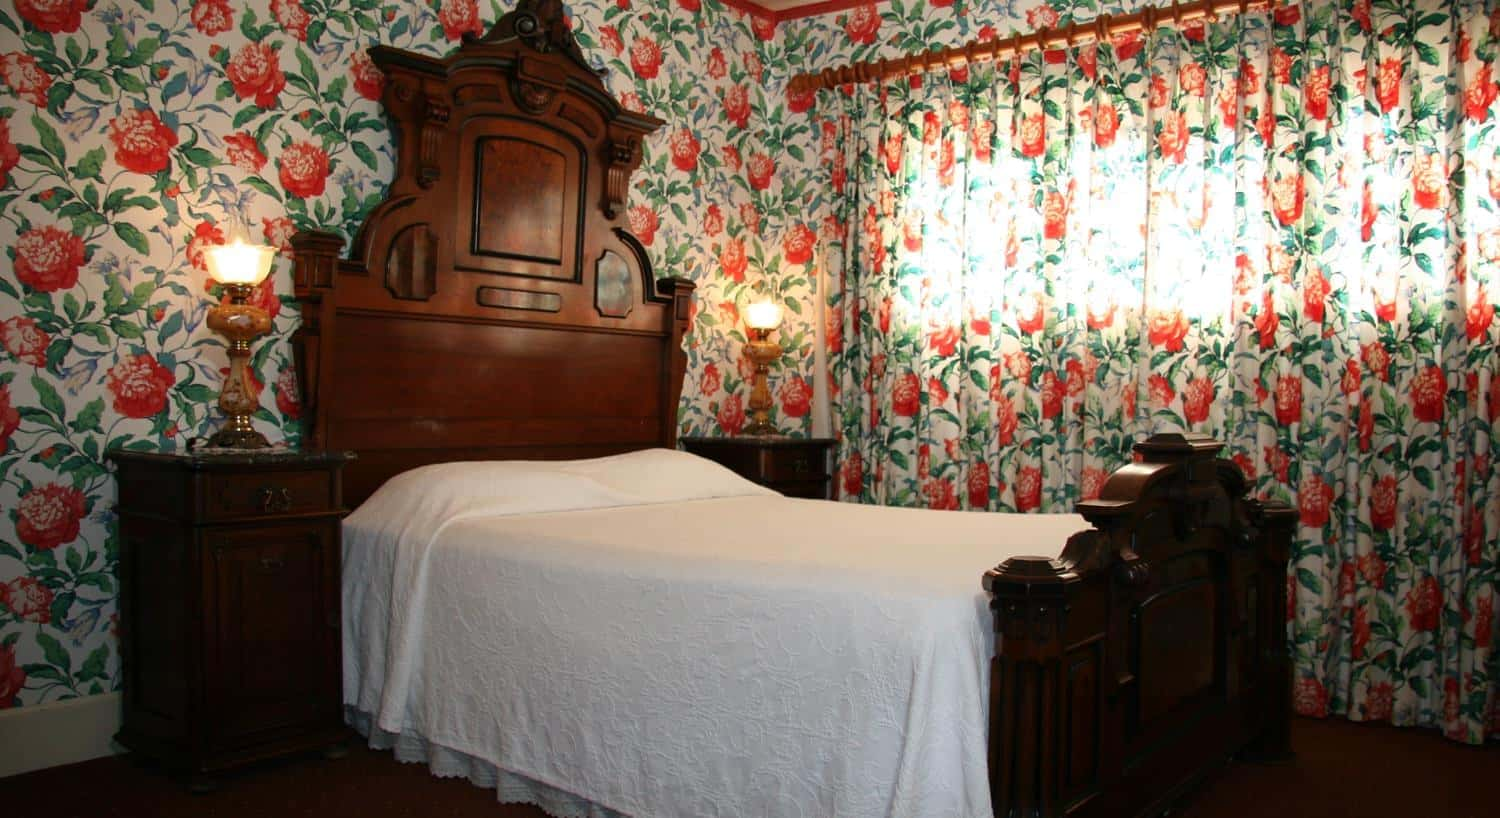 Carriage guest room with carved wood bed, tall headboard, two nightstands, red and green floral walls and curtains